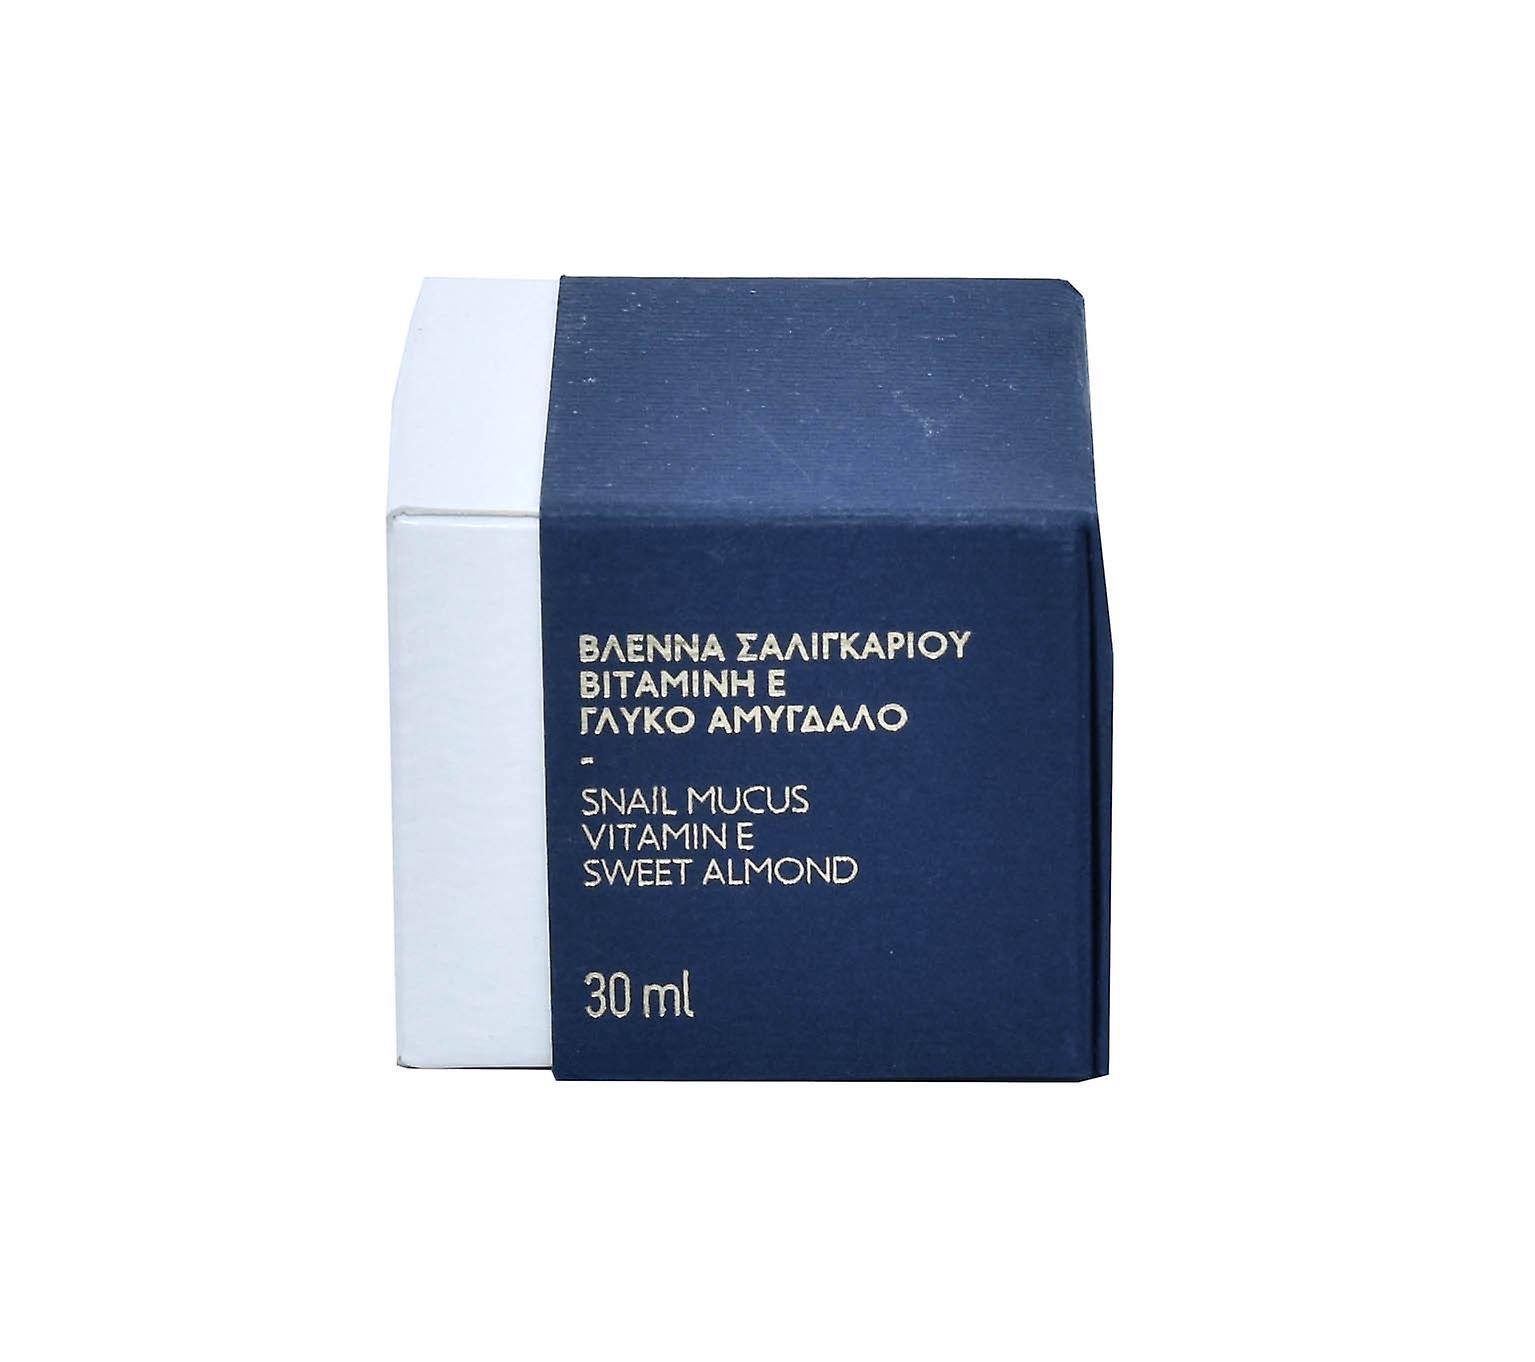 Facial Day Cream, For normal and dry skin with snail mucus.